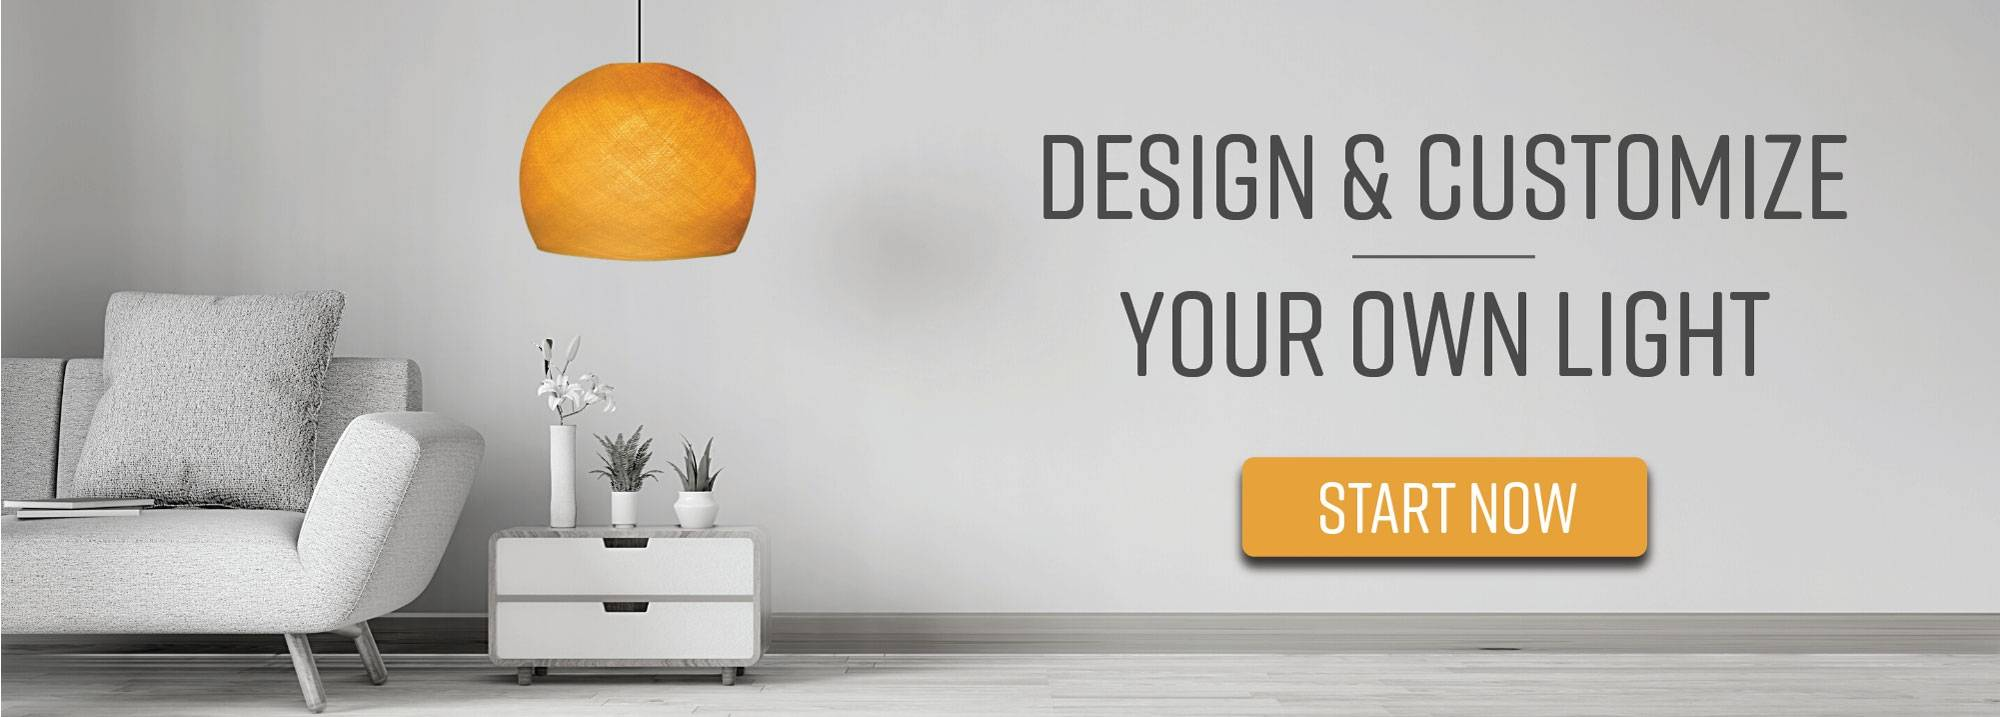 Design & Customize Your Own Light